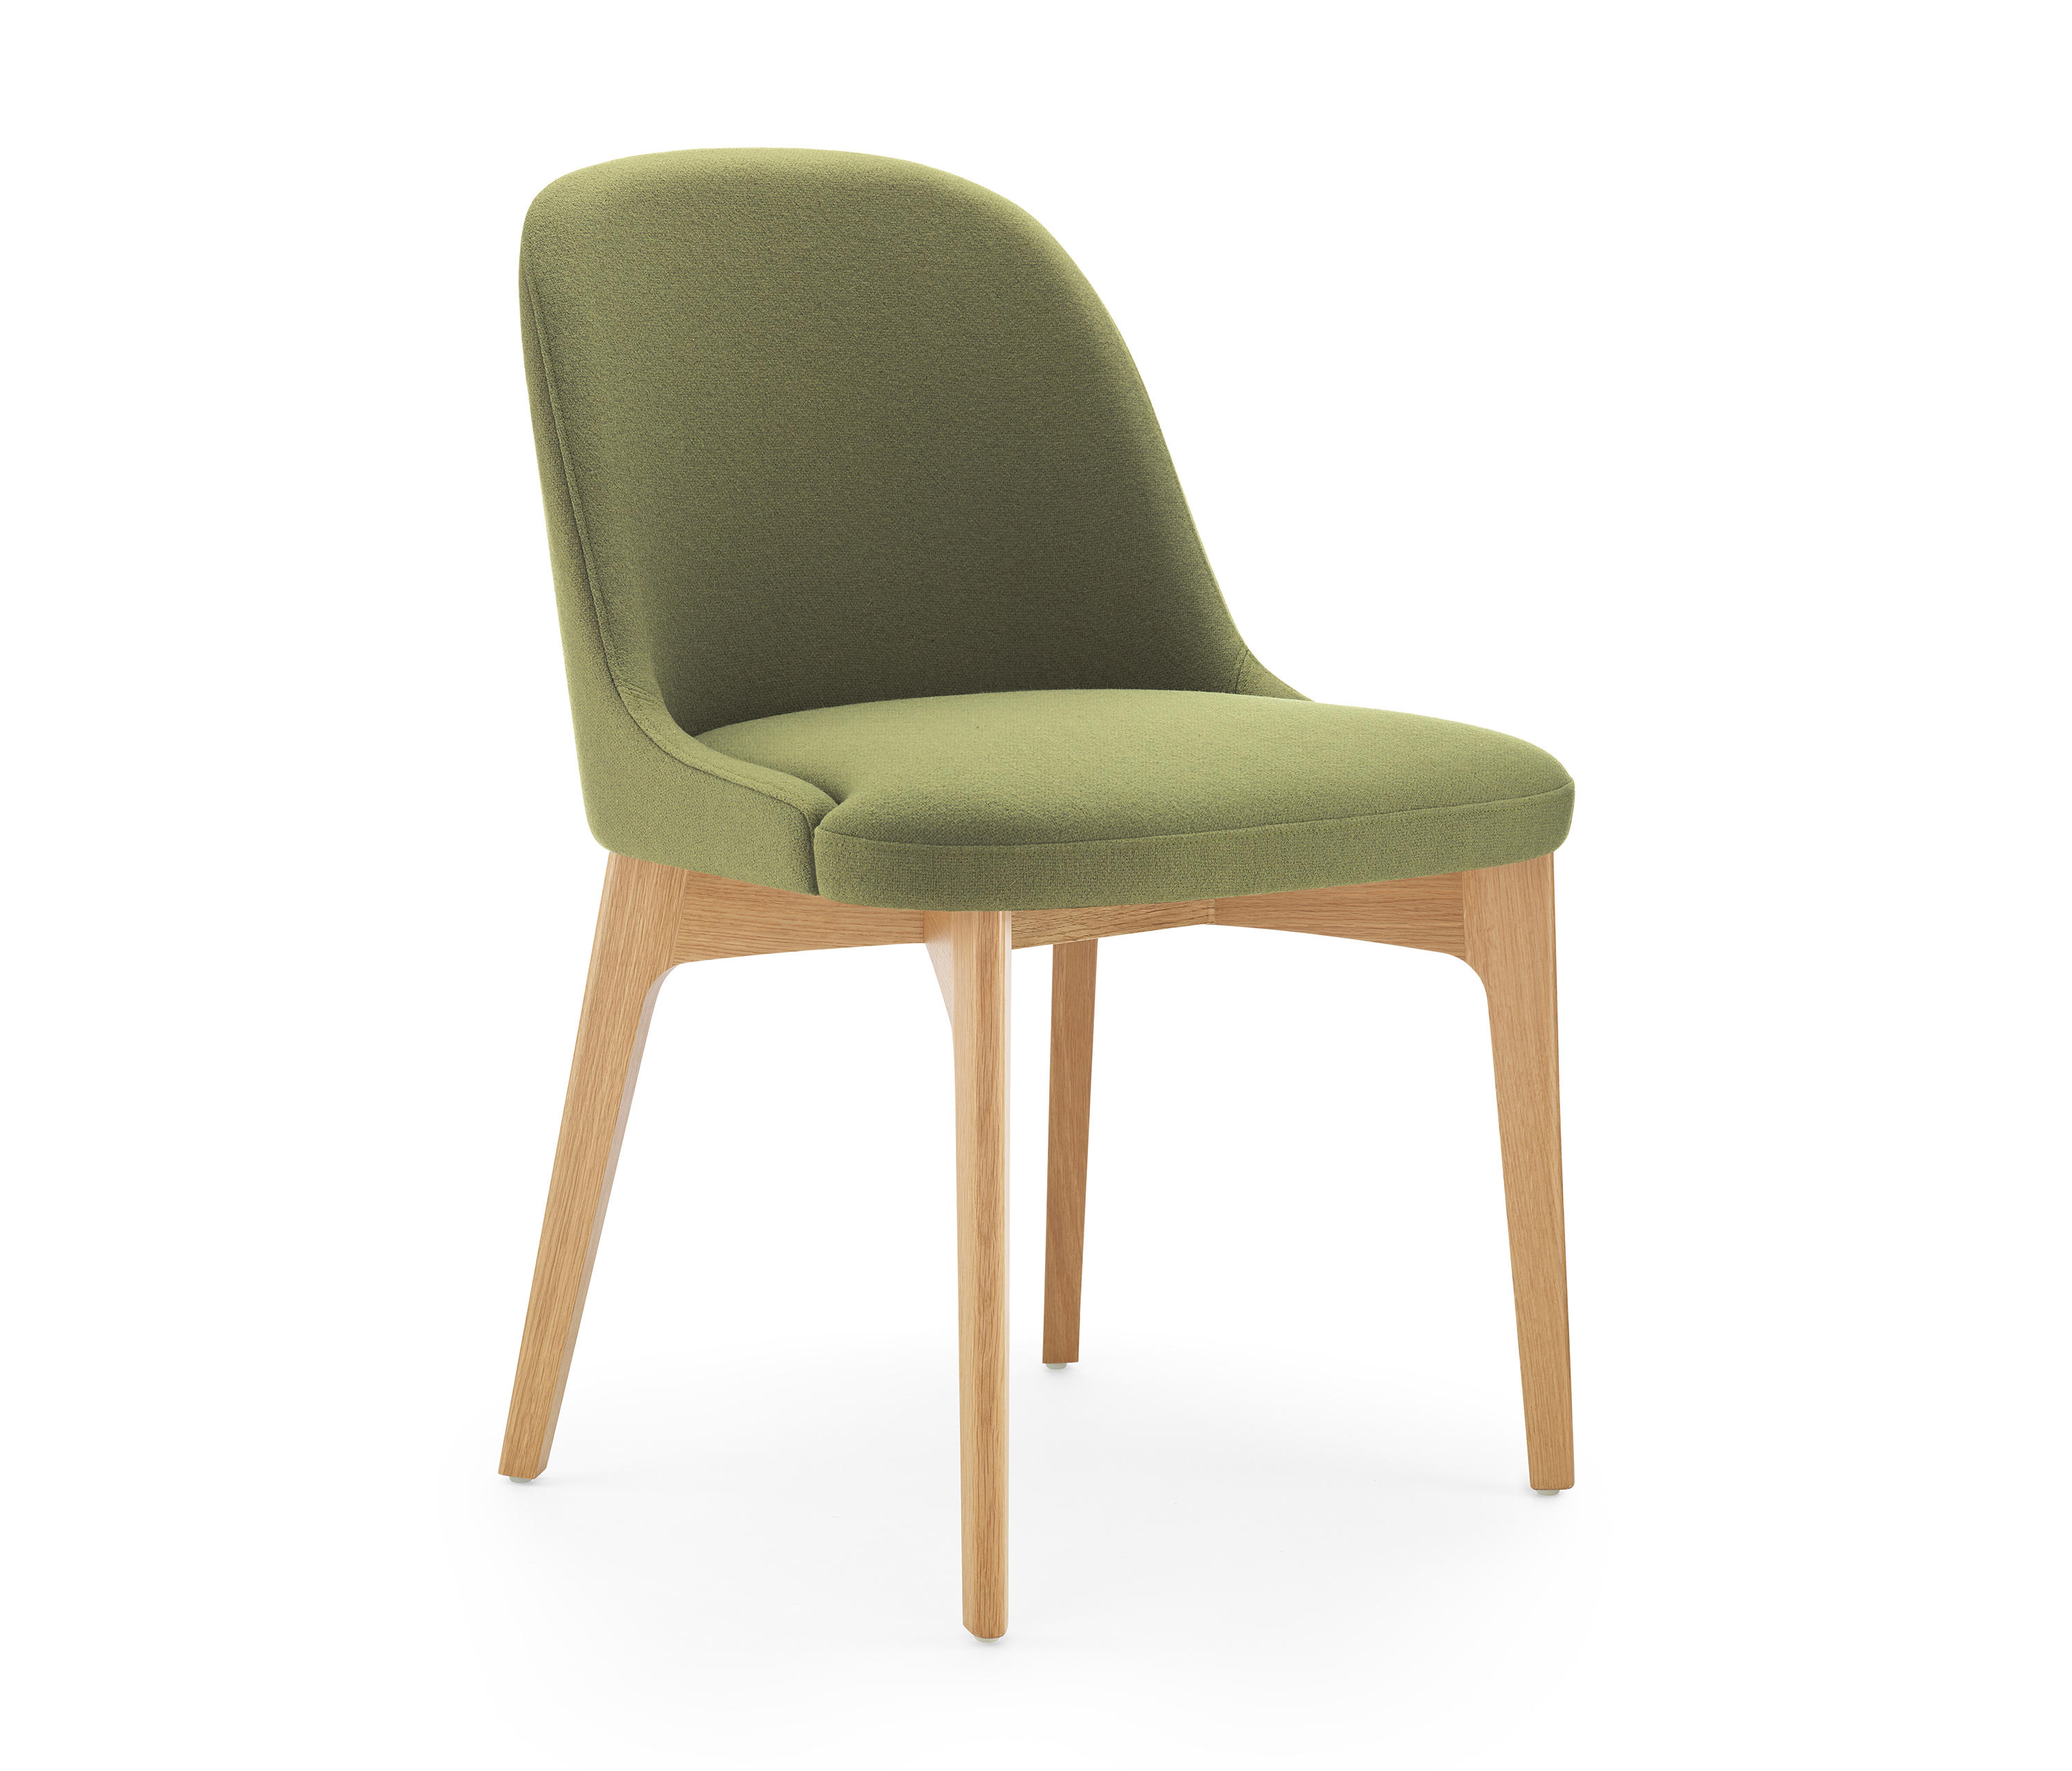 Isla Dining Chair Stühle Von Boss Design Architonic